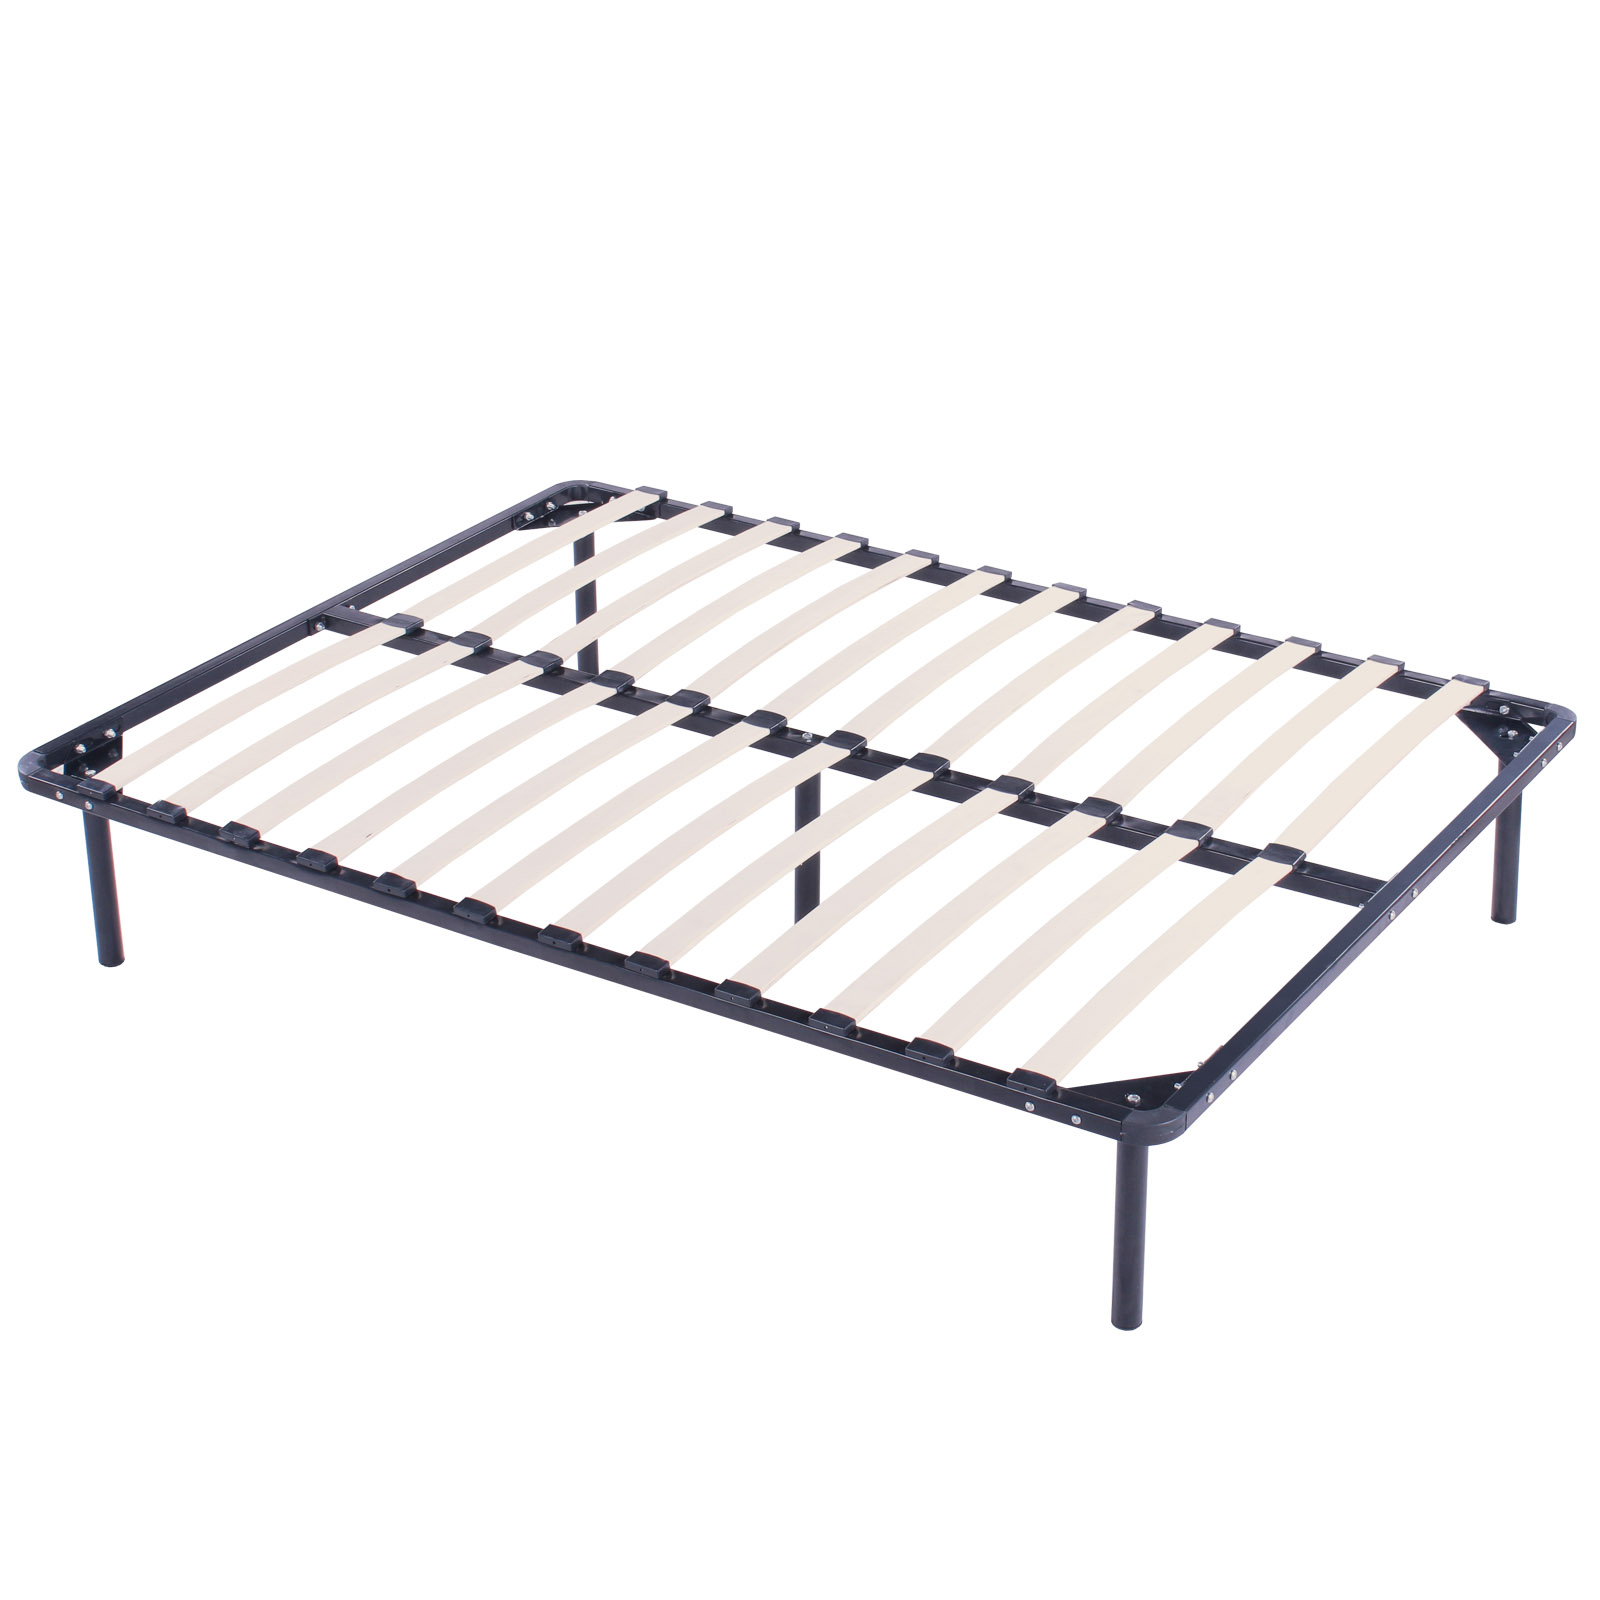 Wood slats metal bed frame twin size sturdy foundation Metal twin bed frame